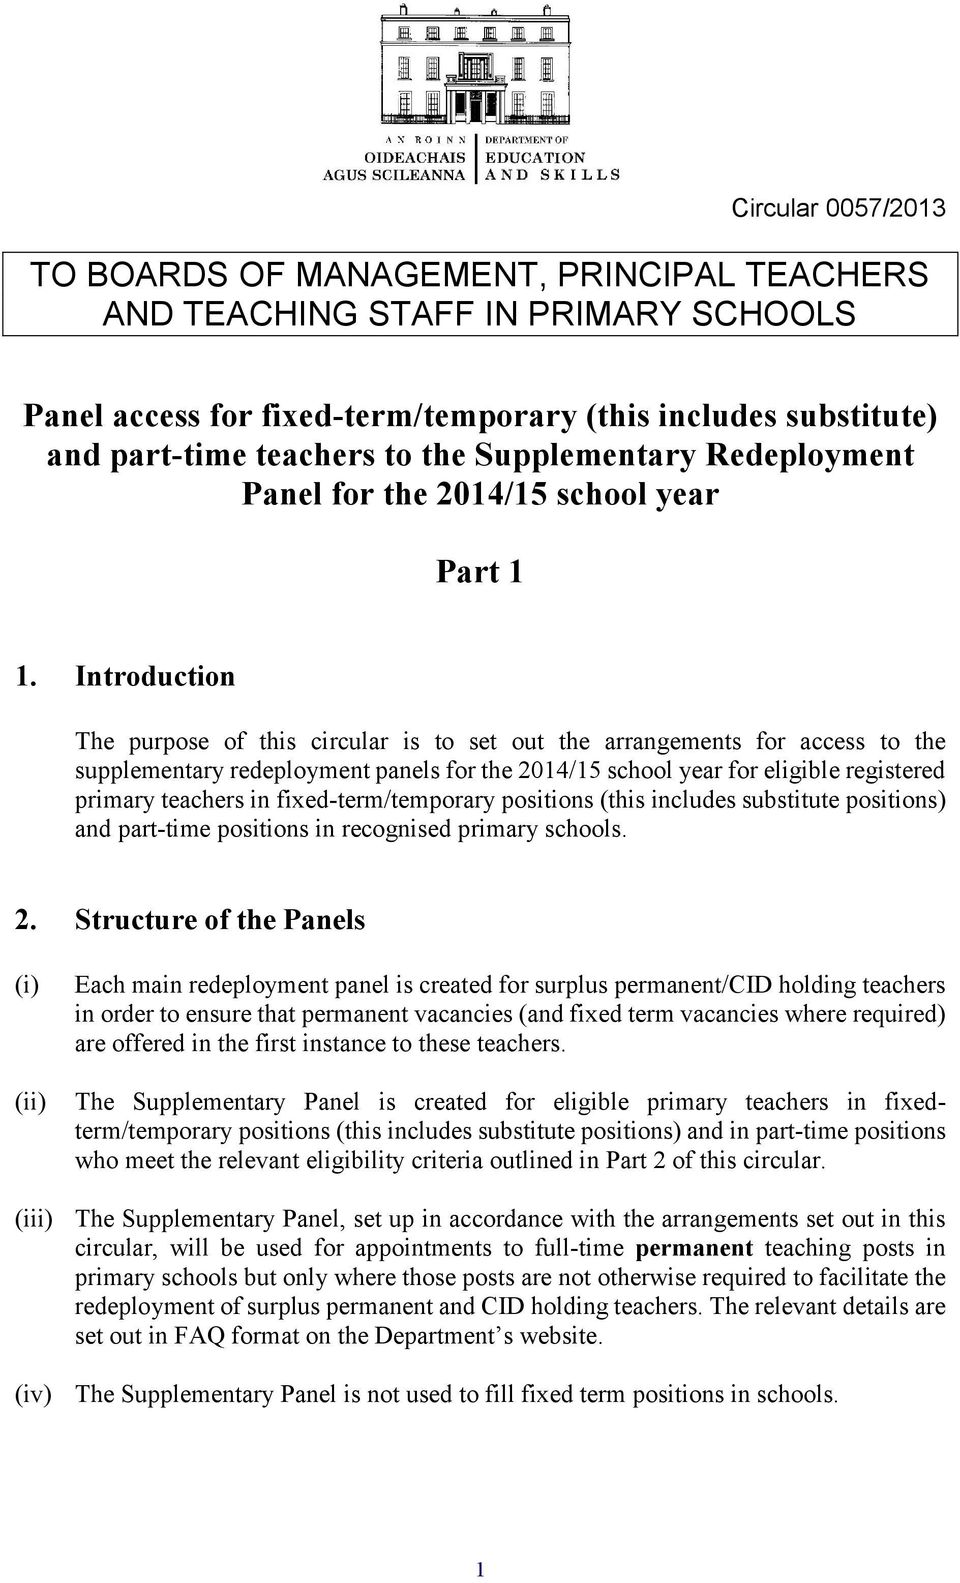 Introduction The purpose of this circular is to set out the arrangements for access to the supplementary redeployment panels for the 2014/15 school year for eligible registered primary teachers in